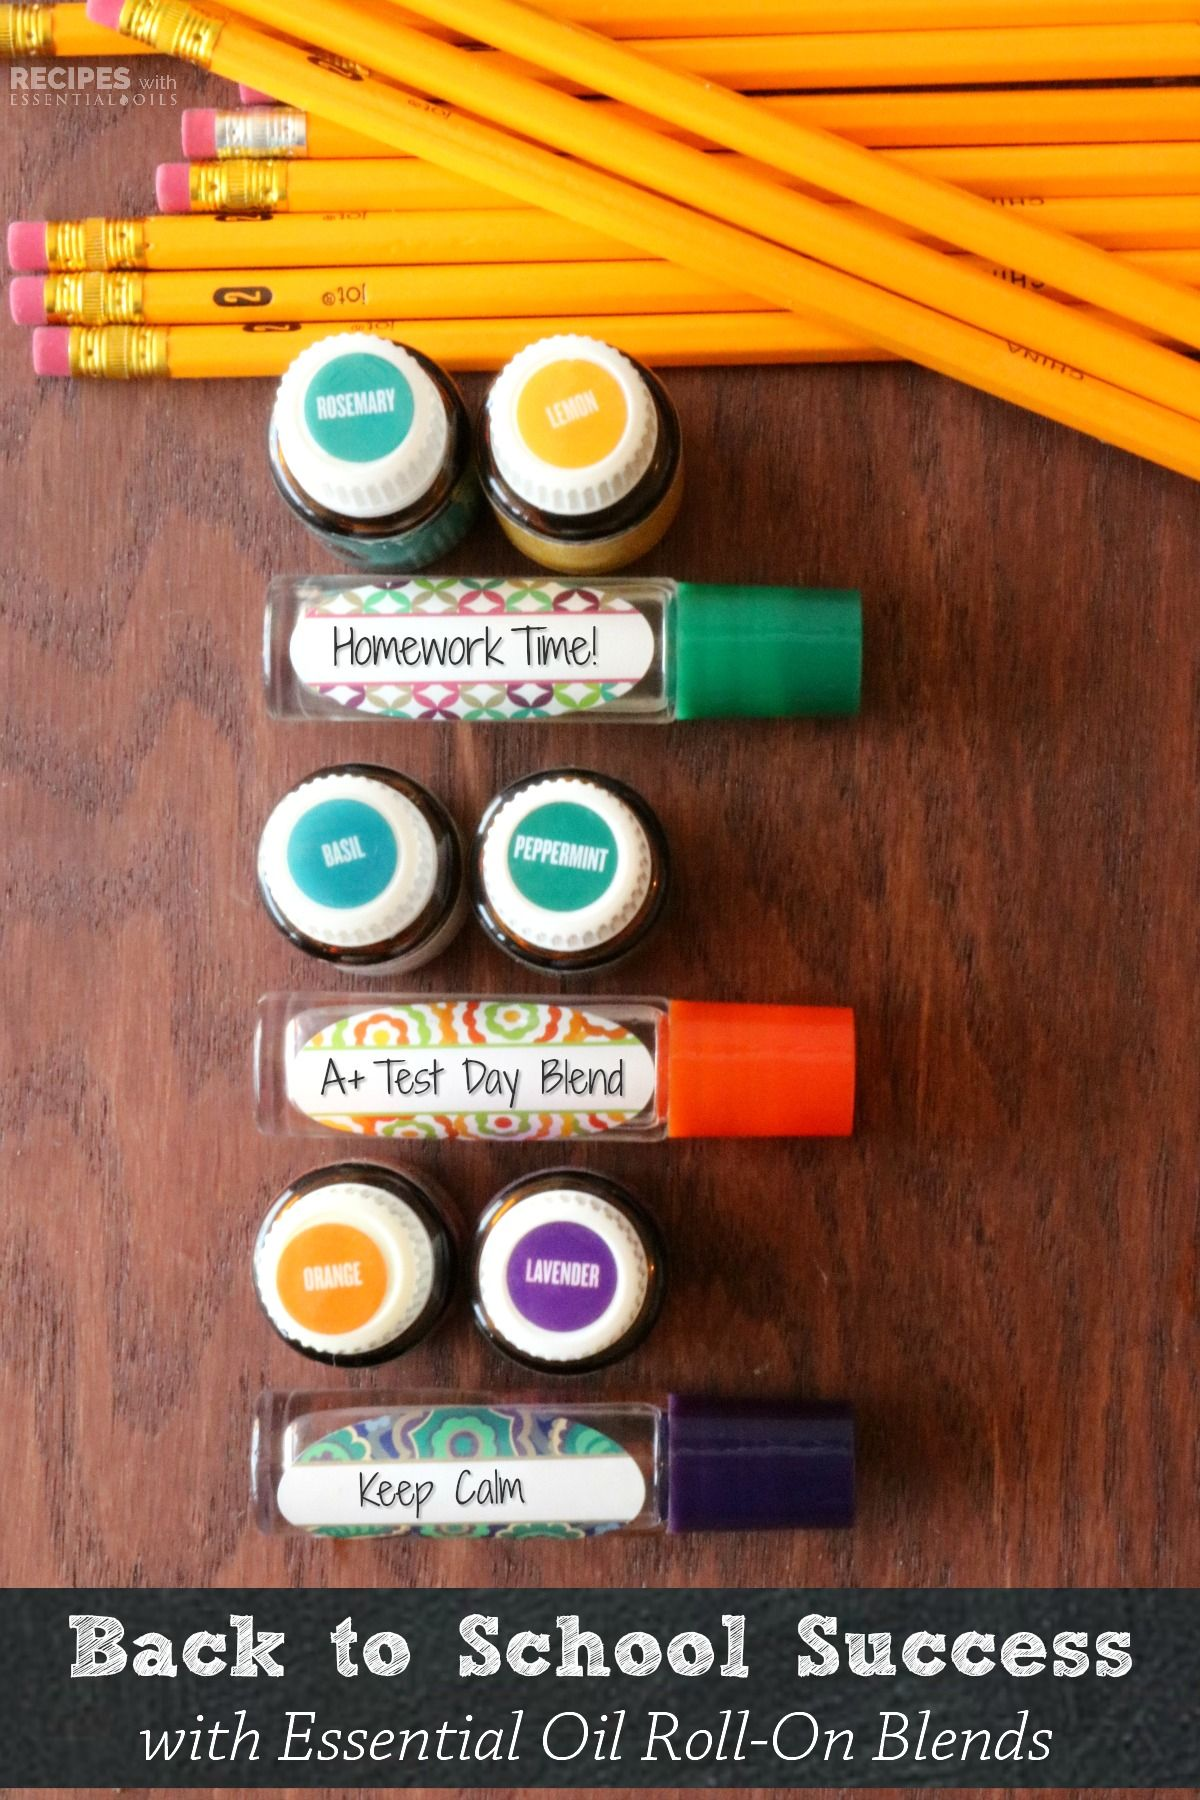 Back To School Success with Oils + 3 Recipes for Calm and Focused